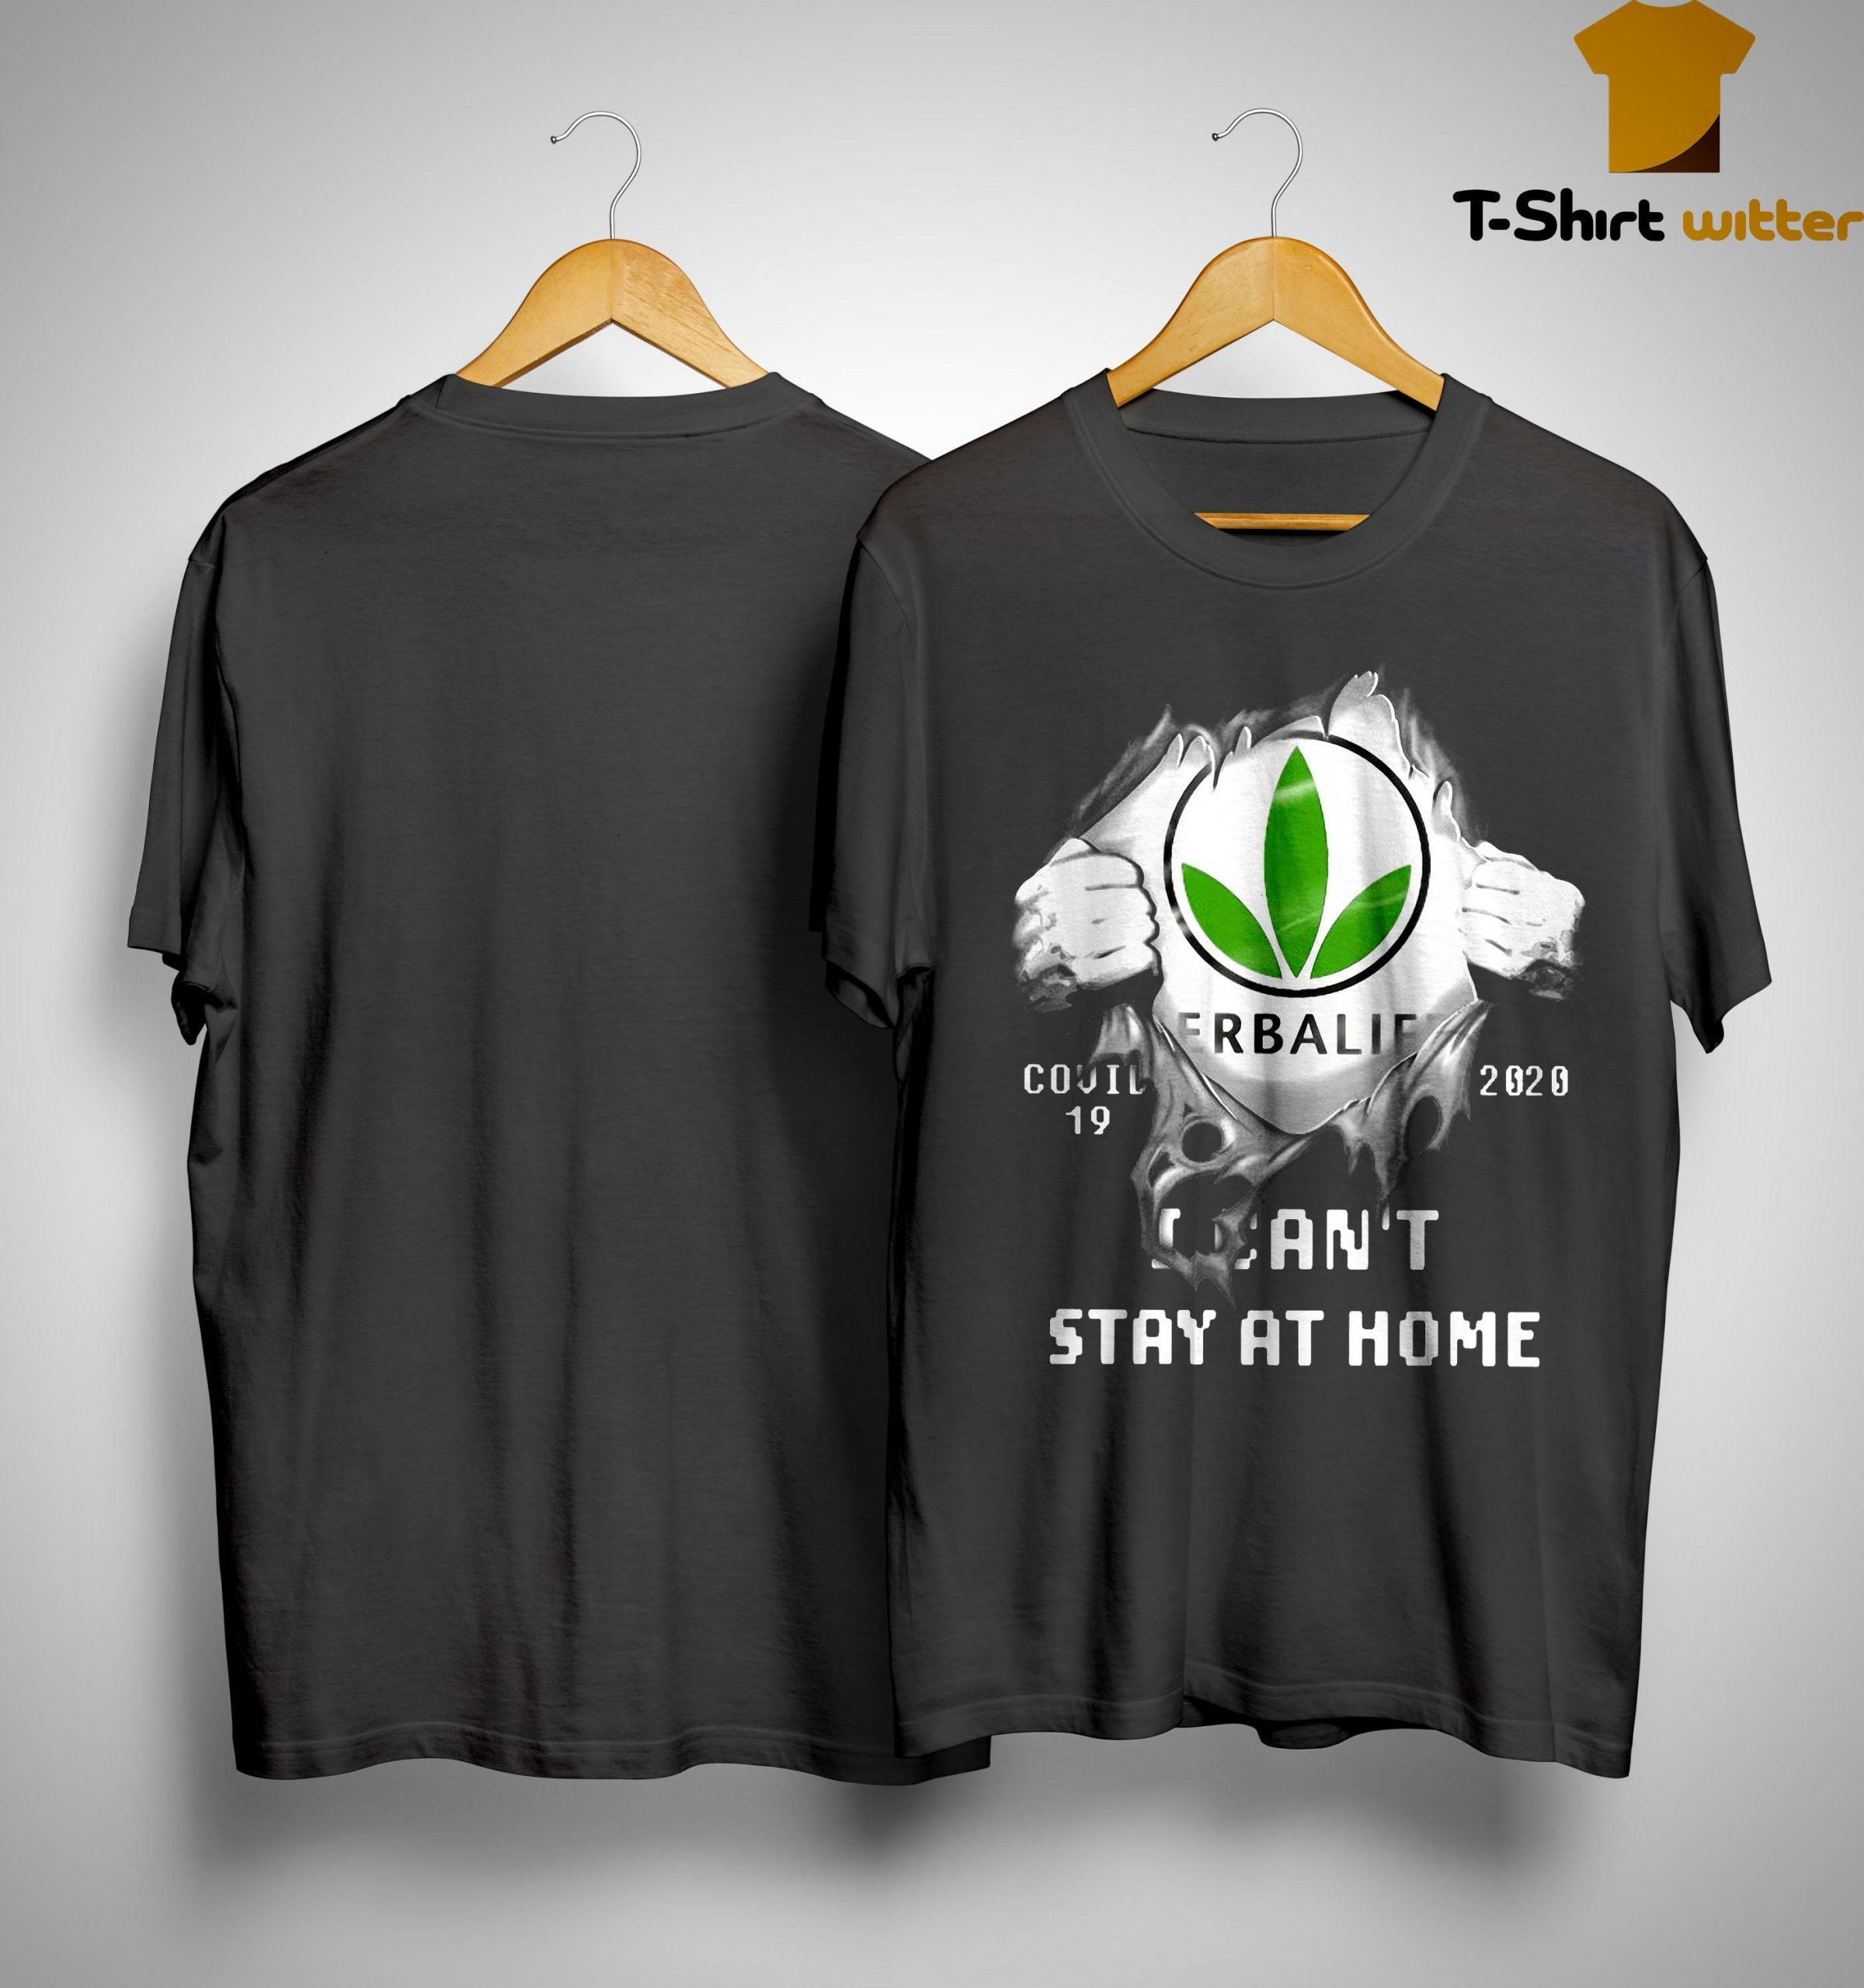 Herbalife Covid 19 2020 I Can't Stay At Home Shirt